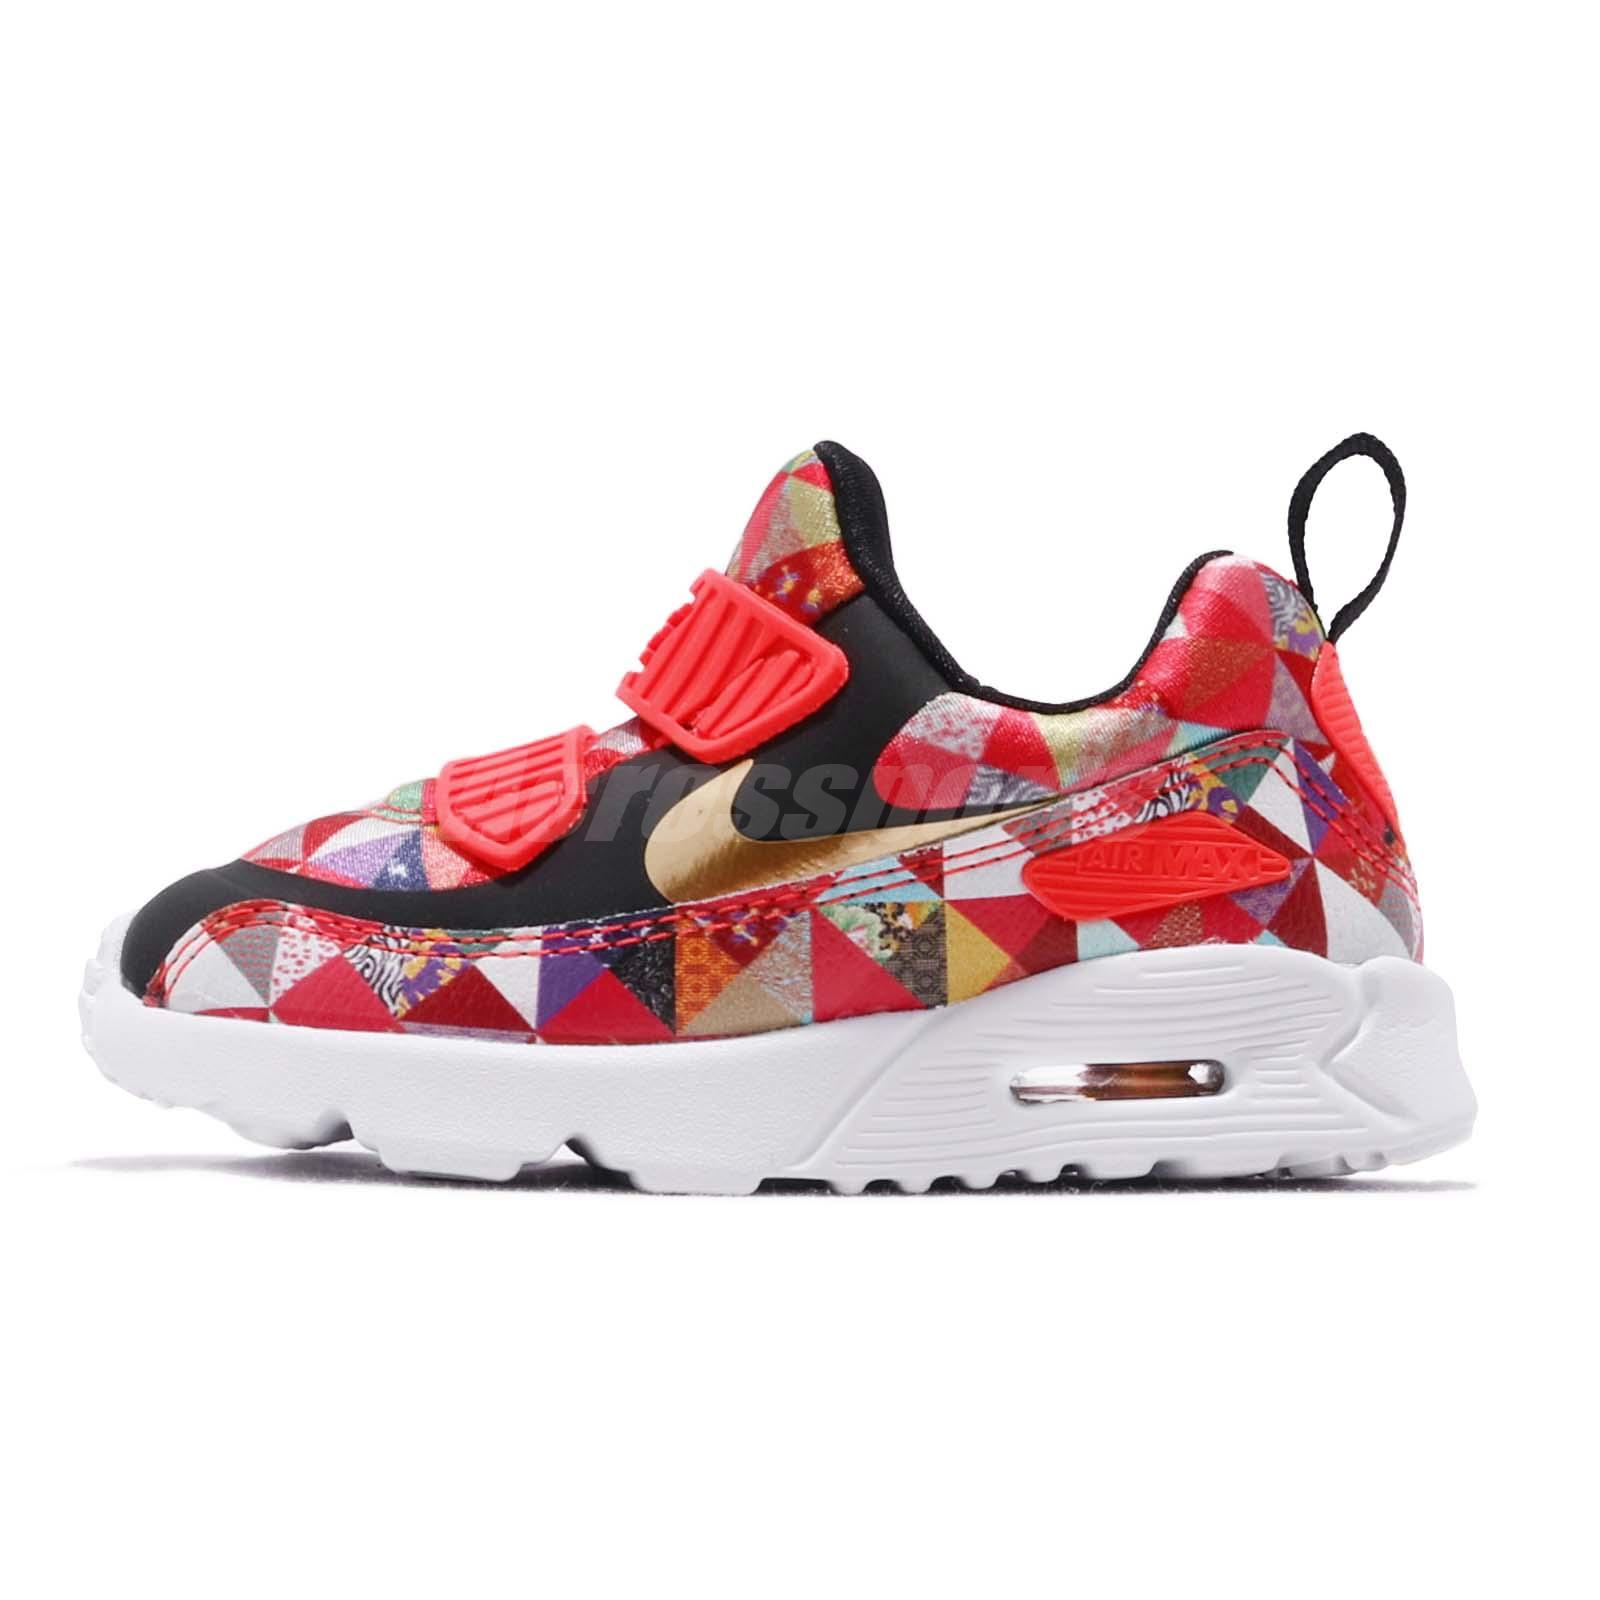 best cheap 6f662 64920 Details about Nike Air Max Tiny 90 BT CNY Chinese New Year TD Toddler  Infant Shoes BV6664-617